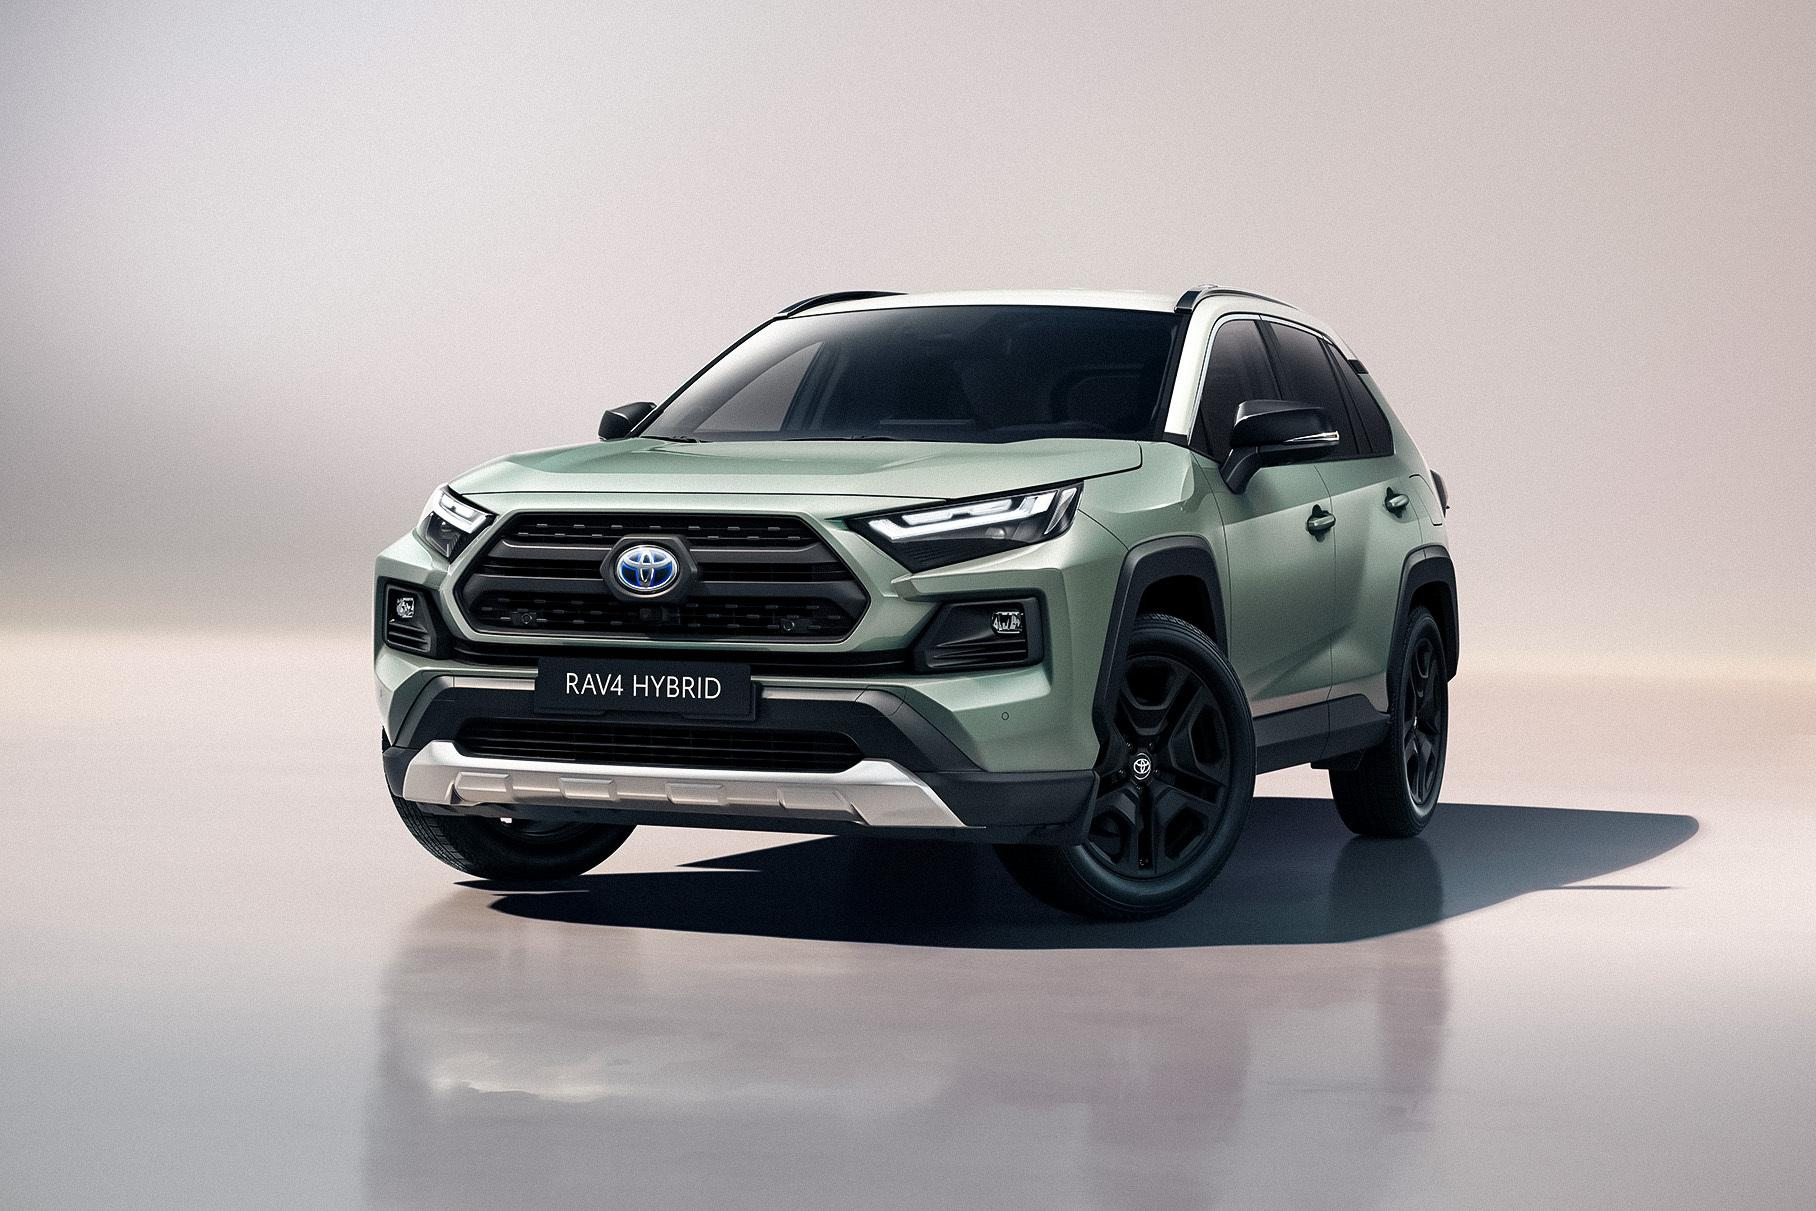 Toyota has expanded its RAV4 offer in Europe by introducing Adventure, a new special trim that incorporates all the 2022MY facelift traits.